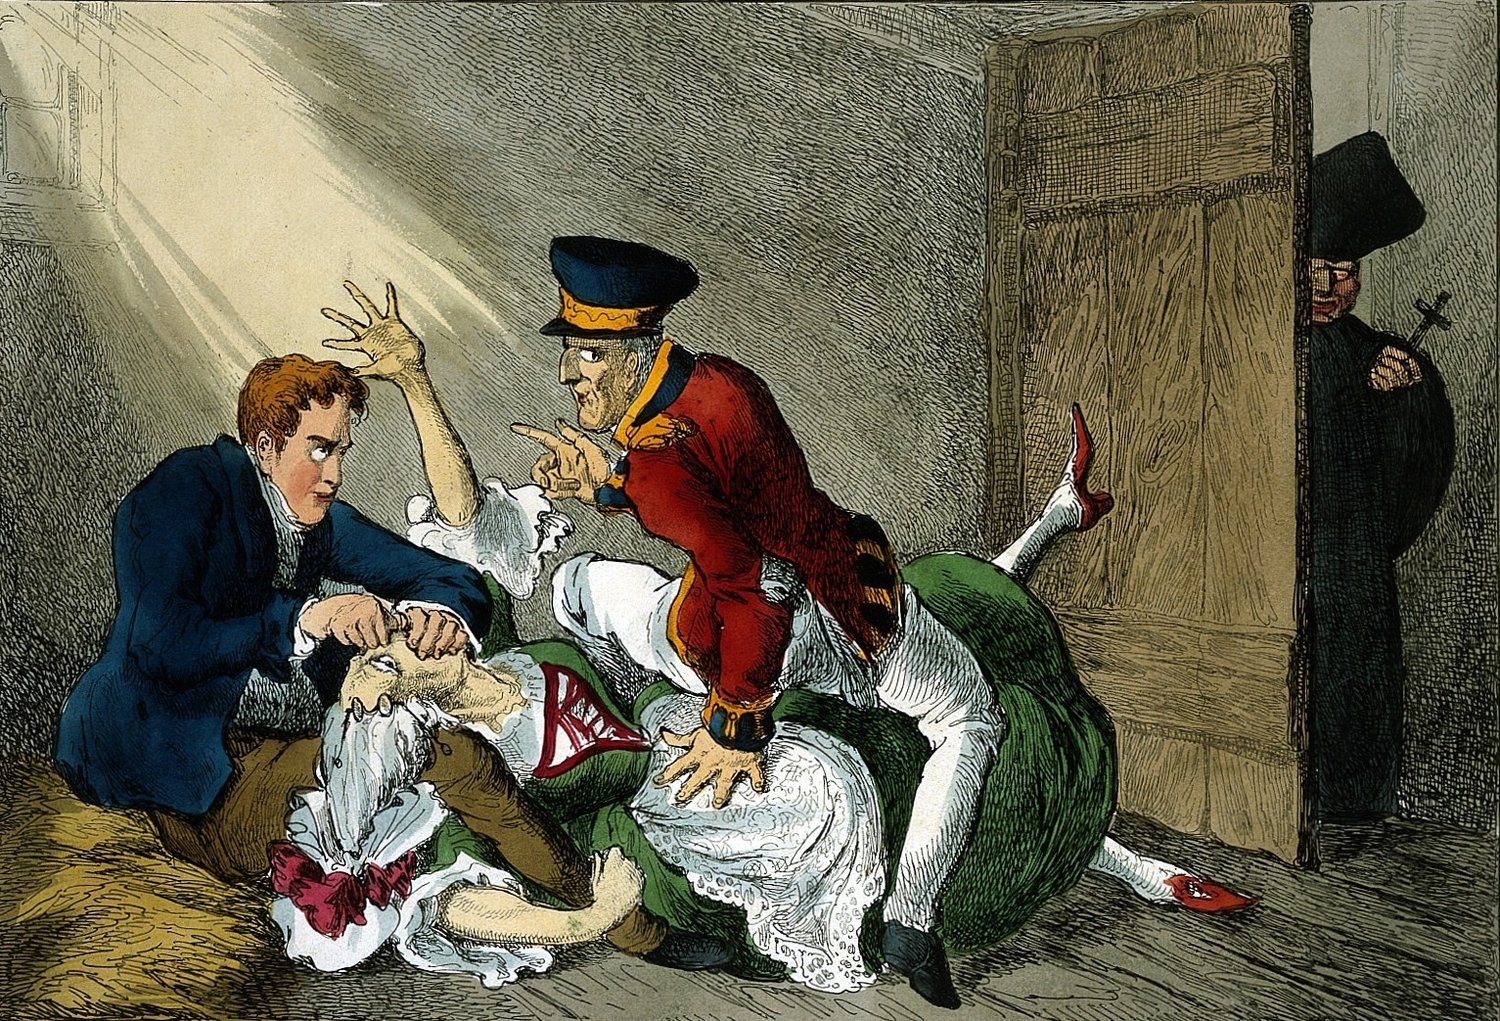 THE ANATOMY ACT 1832 — HARNESSING THE POWER OF THE CRIMINAL CORPSE